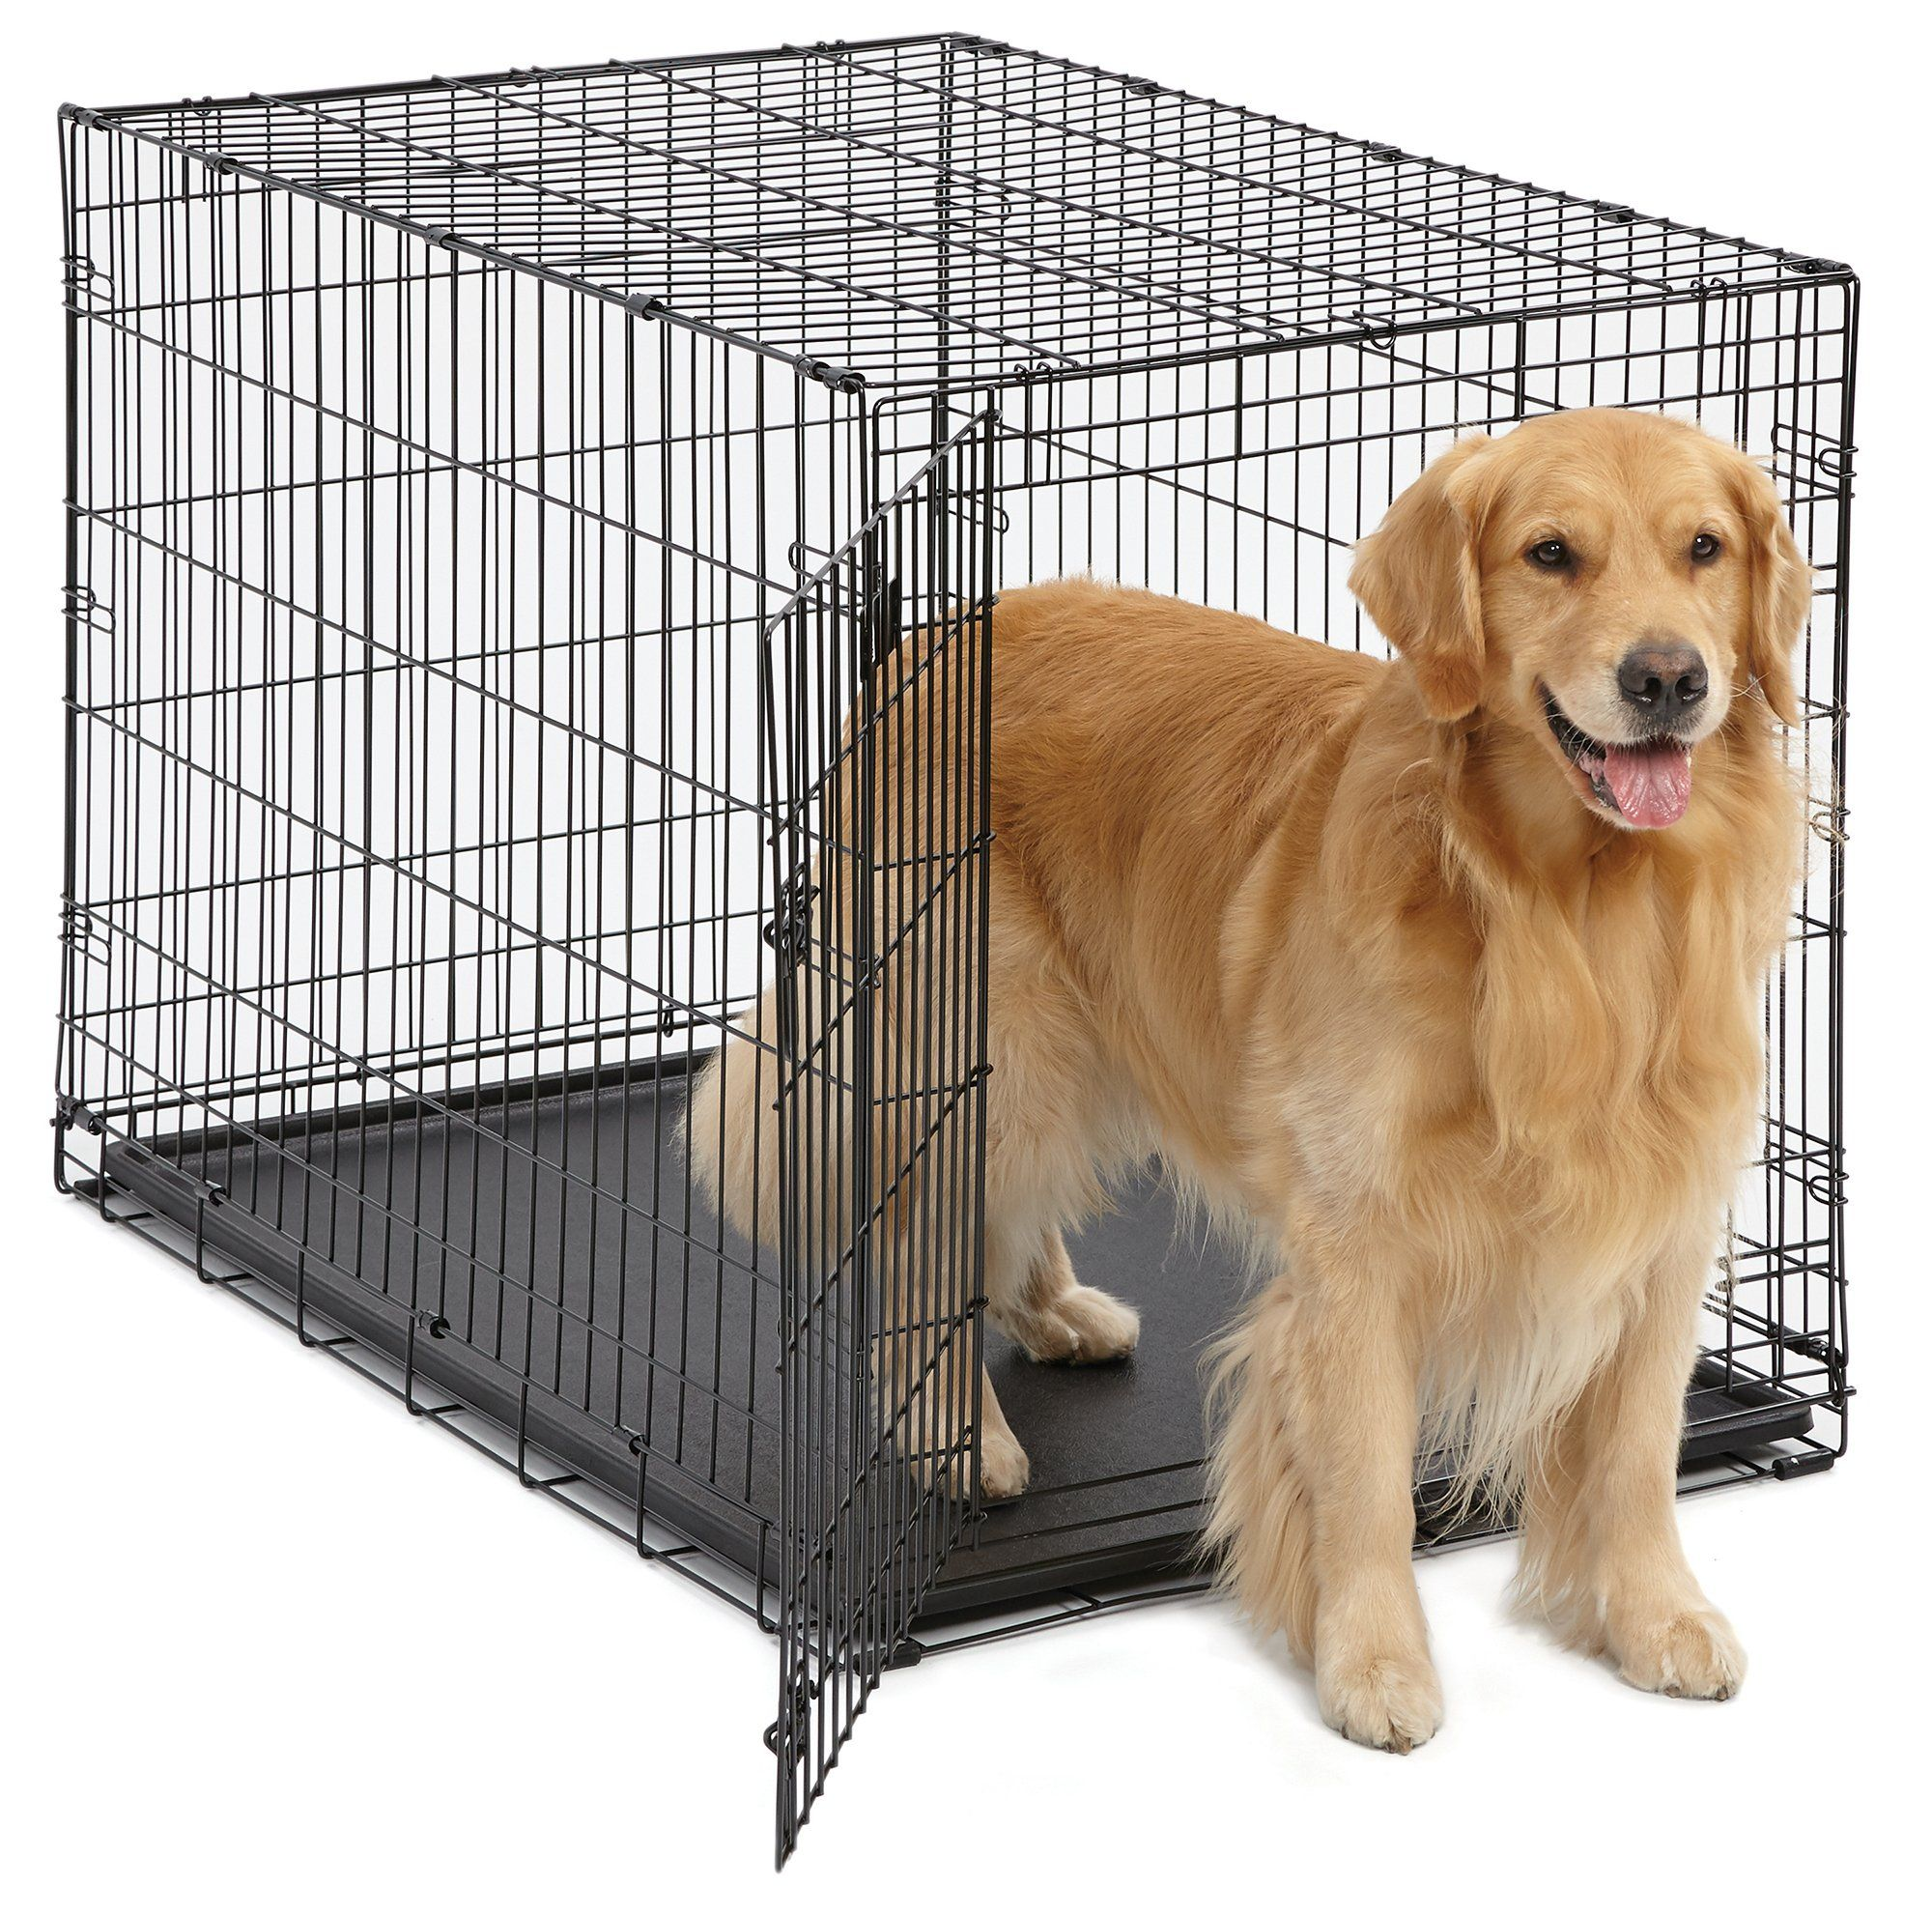 Midwest 42 Icrate Folding Metal Dog Crate W Divider Panel Floor Protectingroller Feet And Leakproof Plastic Tray 4 Dog Crate Folding Dog Crate Dog Crate Sizes